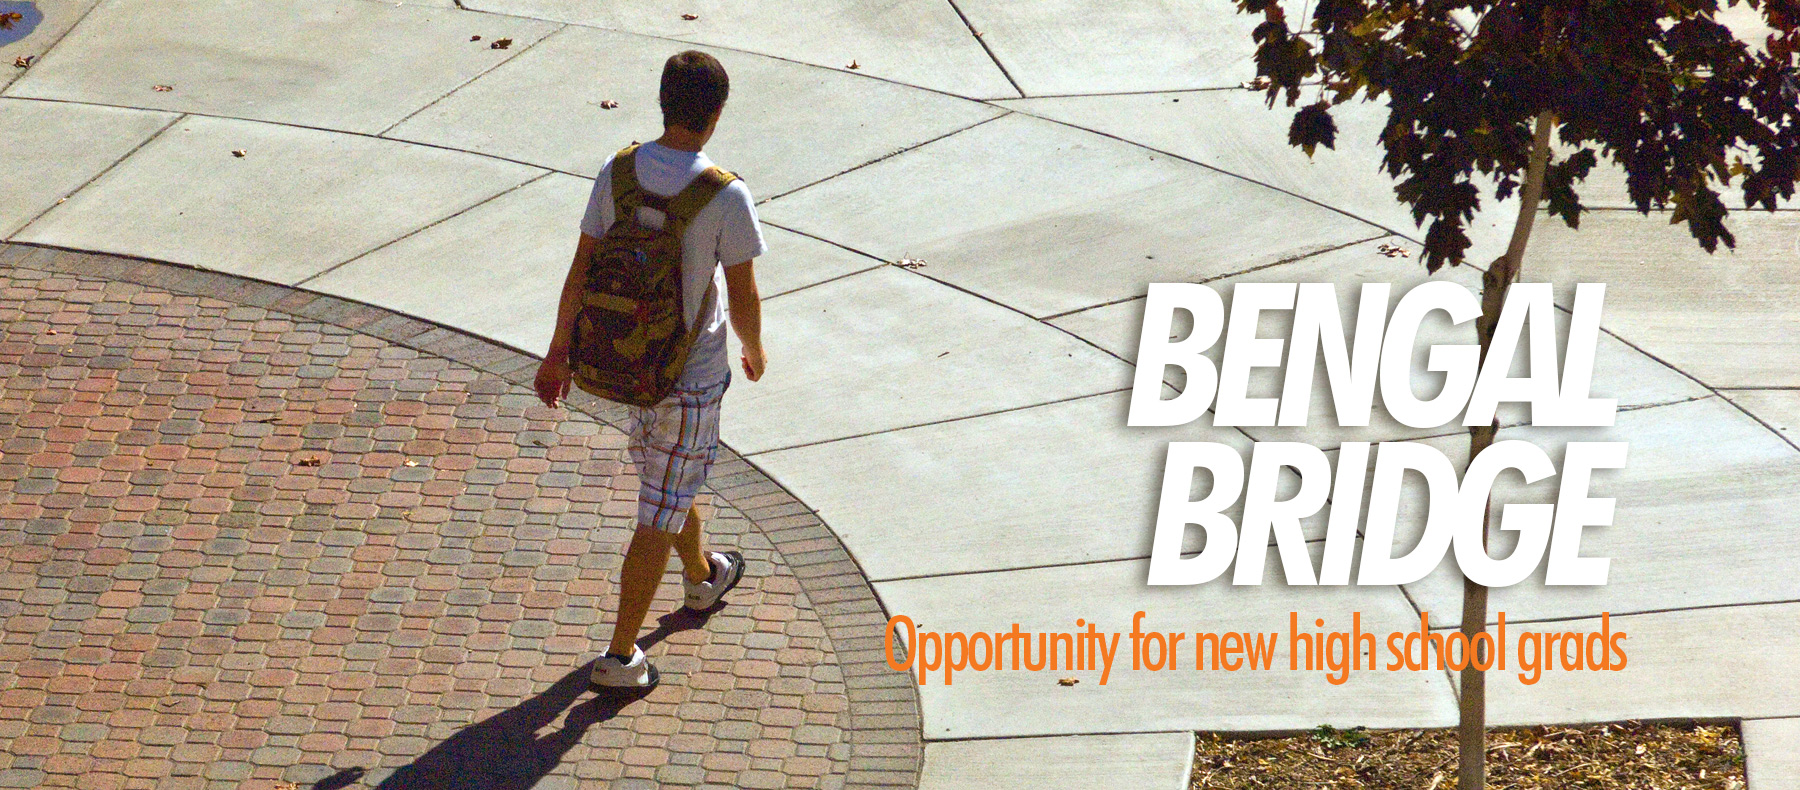 Bengal Bridge opportunity for new high school grads